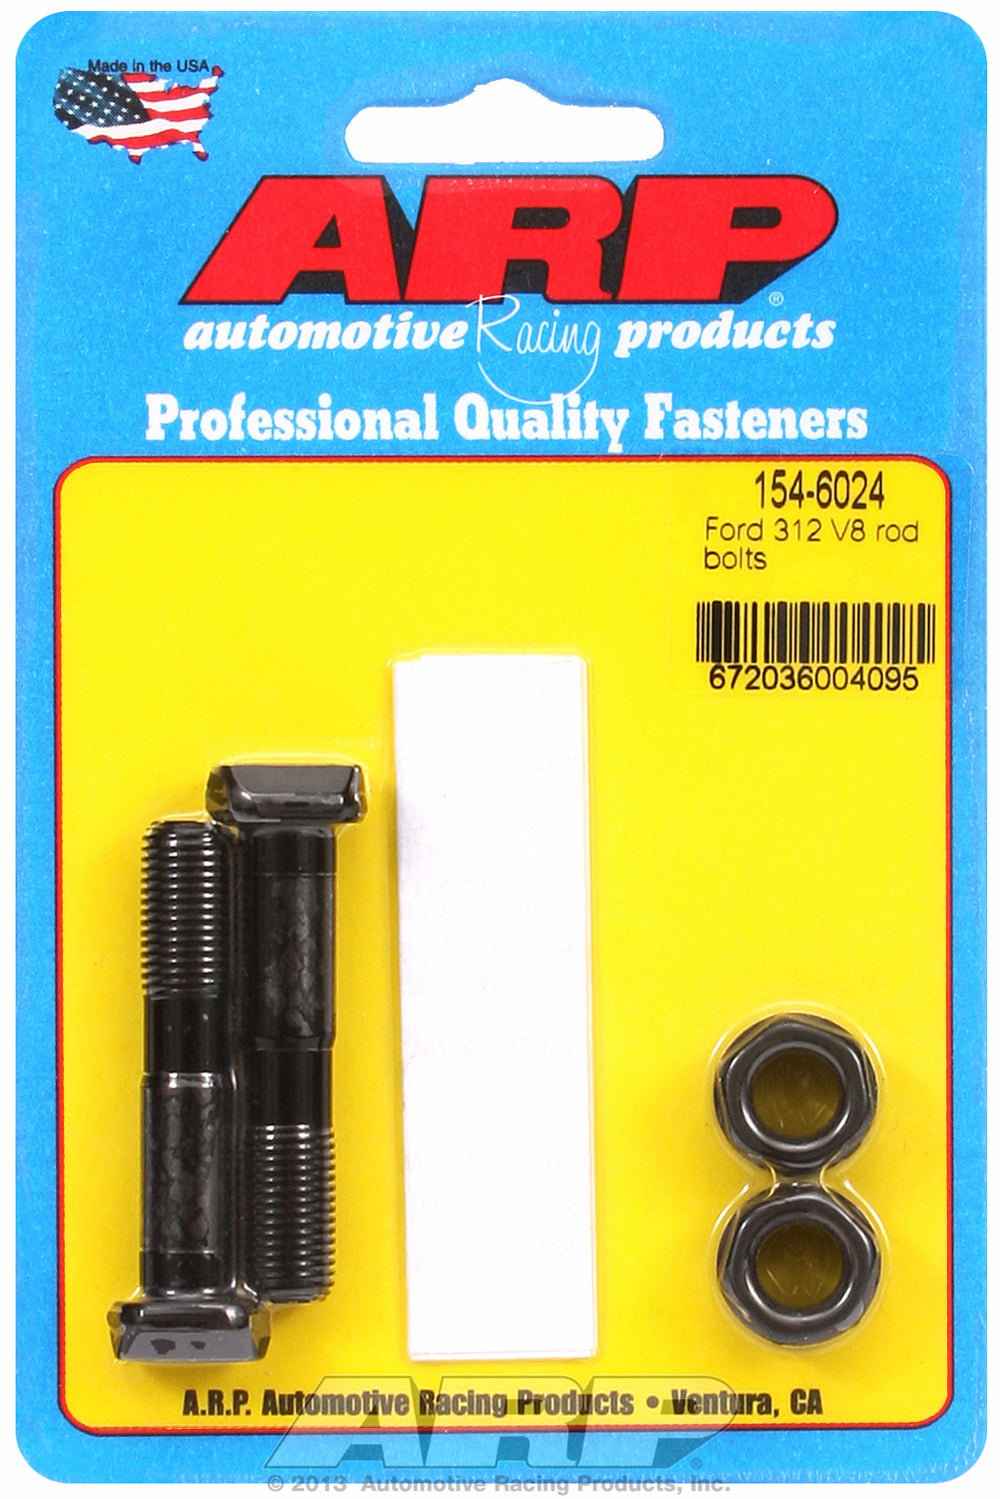 Hi-Perf 8740 (2-pc) Rod Bolt Kit for Ford 239-256-272-292 Y block (rod marked ECZ)